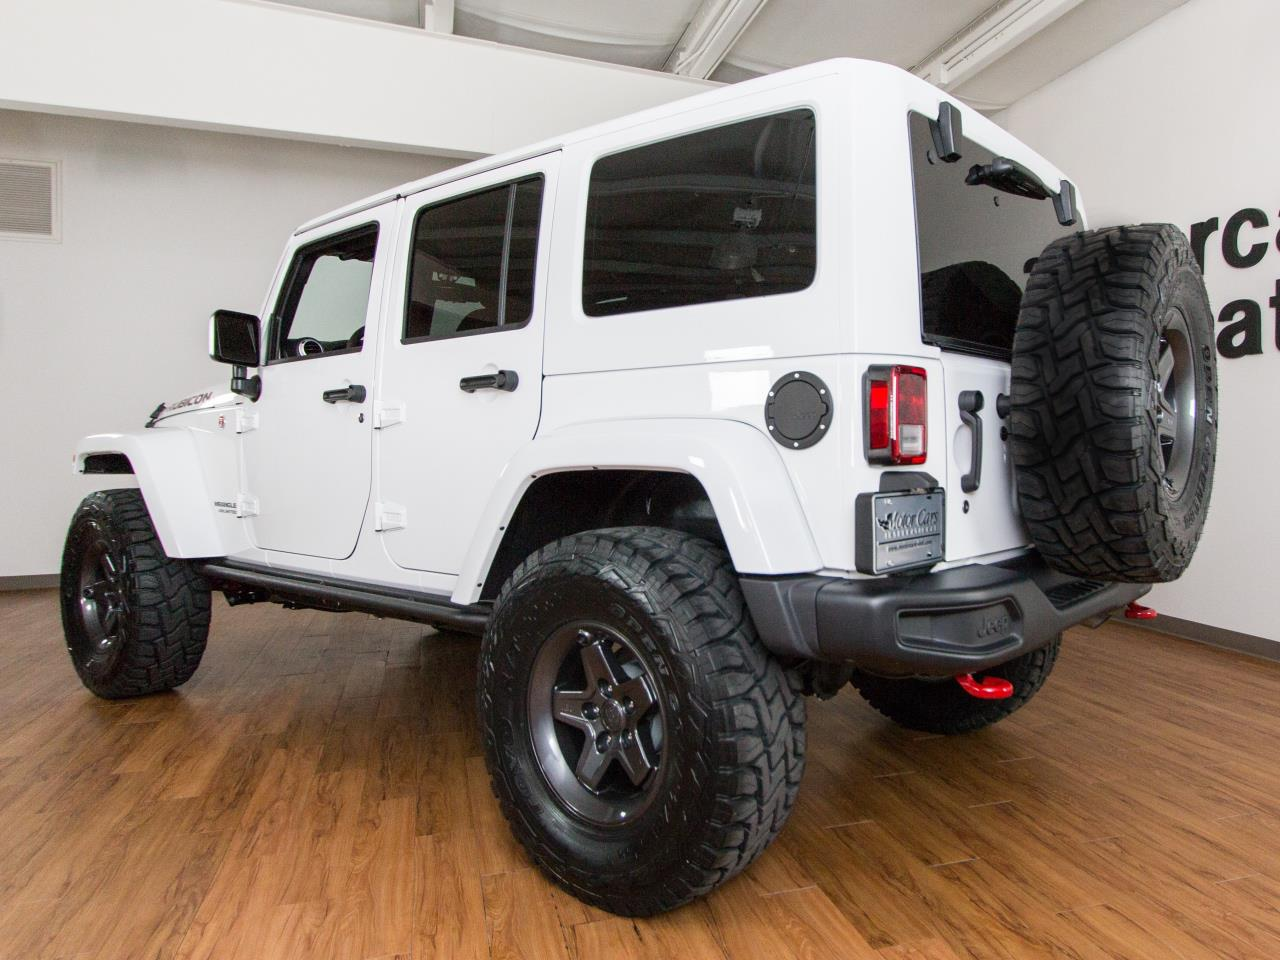 2017 jeep wrangler unlimited rubicon sport utility 4 door ebay. Black Bedroom Furniture Sets. Home Design Ideas